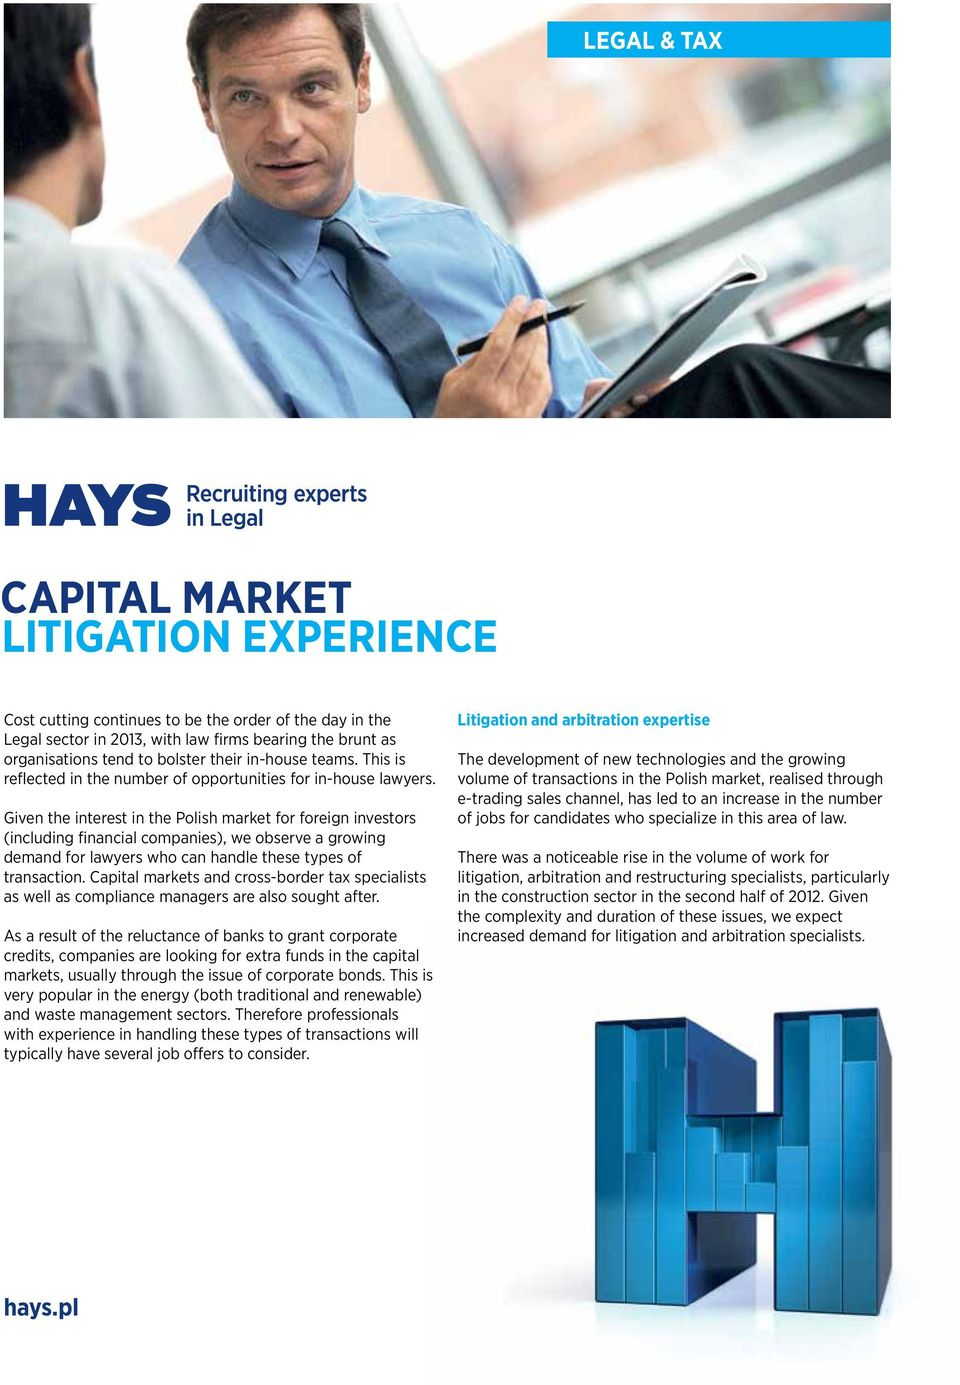 Given the interest in the Polish market for foreign investors (including financial companies), we observe a growing demand for lawyers who can handle these types of transaction.